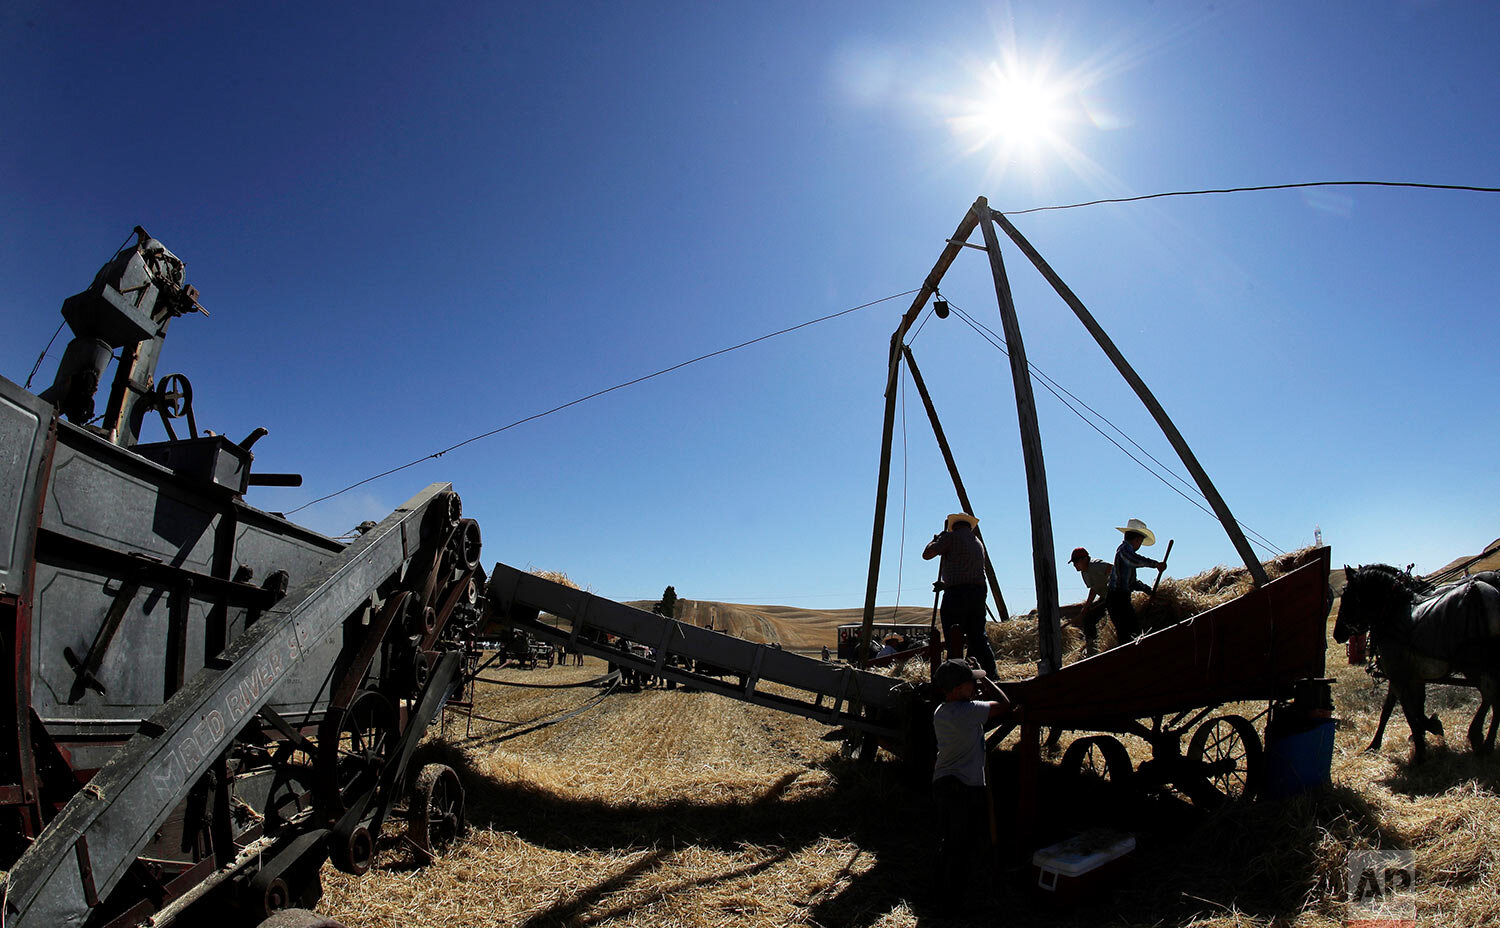 Workers use pitchforks to move cut barley from a wagon to a stationary grain thresher, left, near Colfax, Wash., Sept. 2, 2019. (AP Photo/Ted S. Warren)